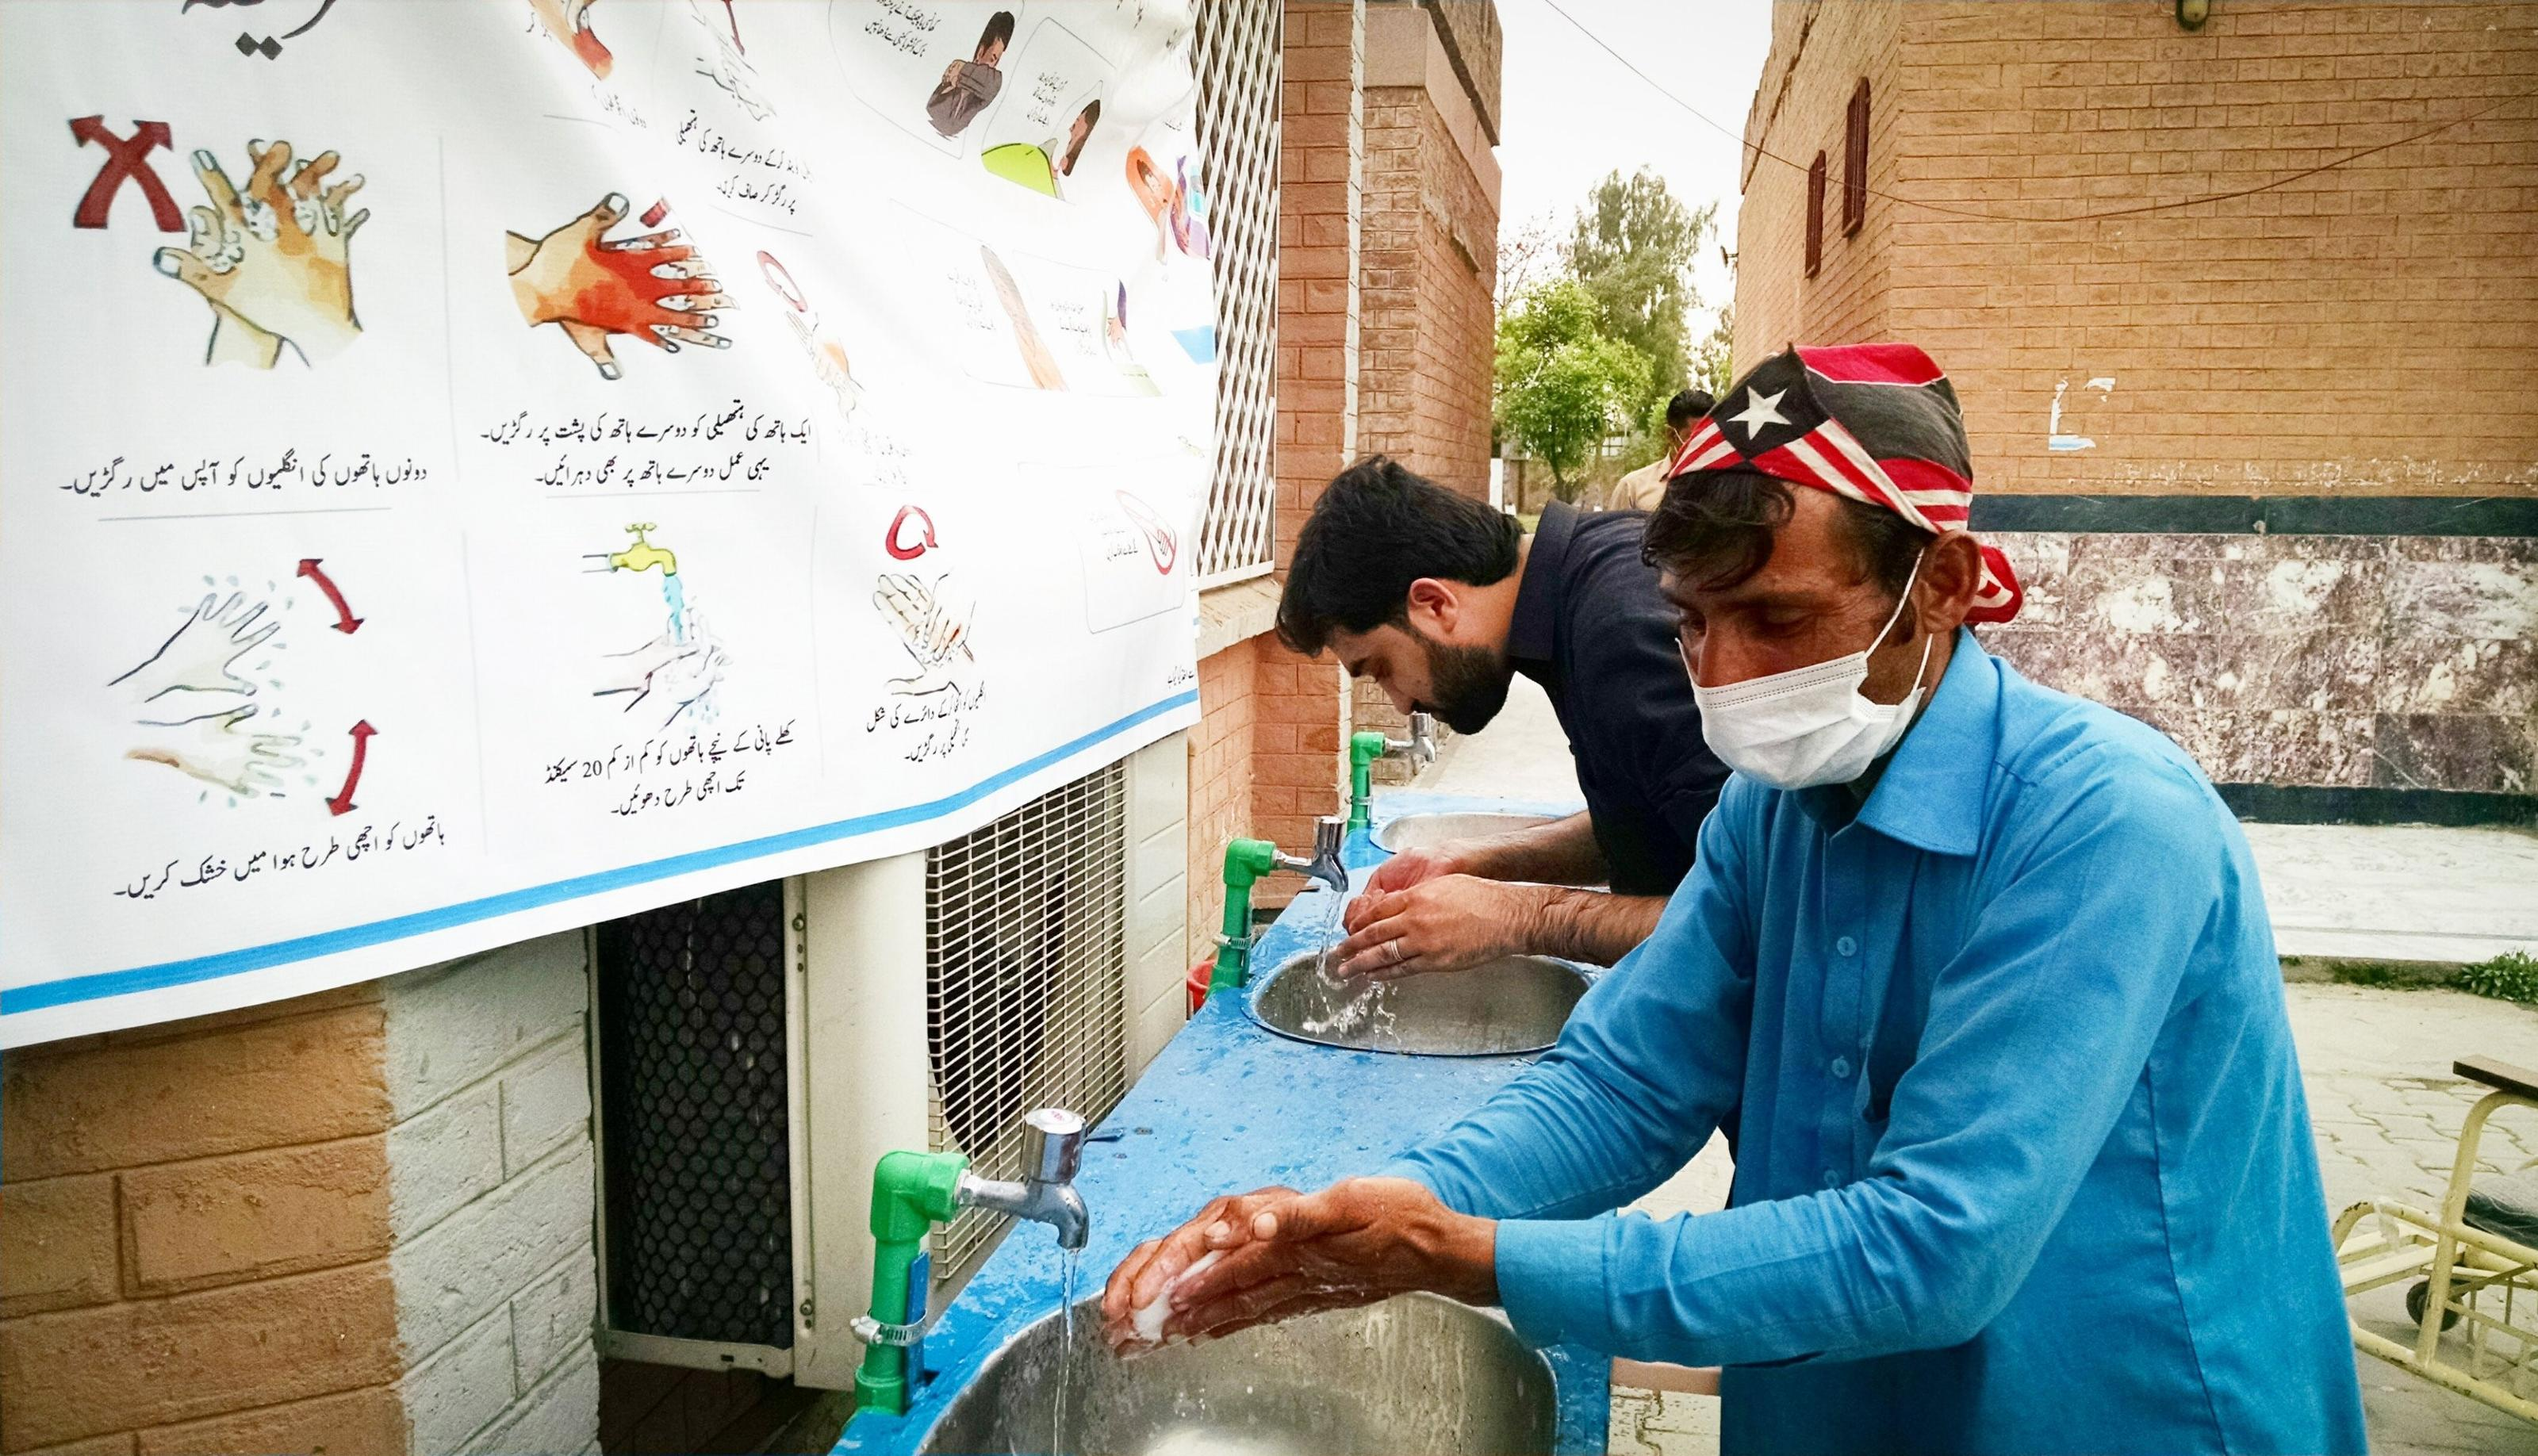 2 men using a handwashing station at Mardan Medical Complex outside its quarantine and emergency centres in Pakistan